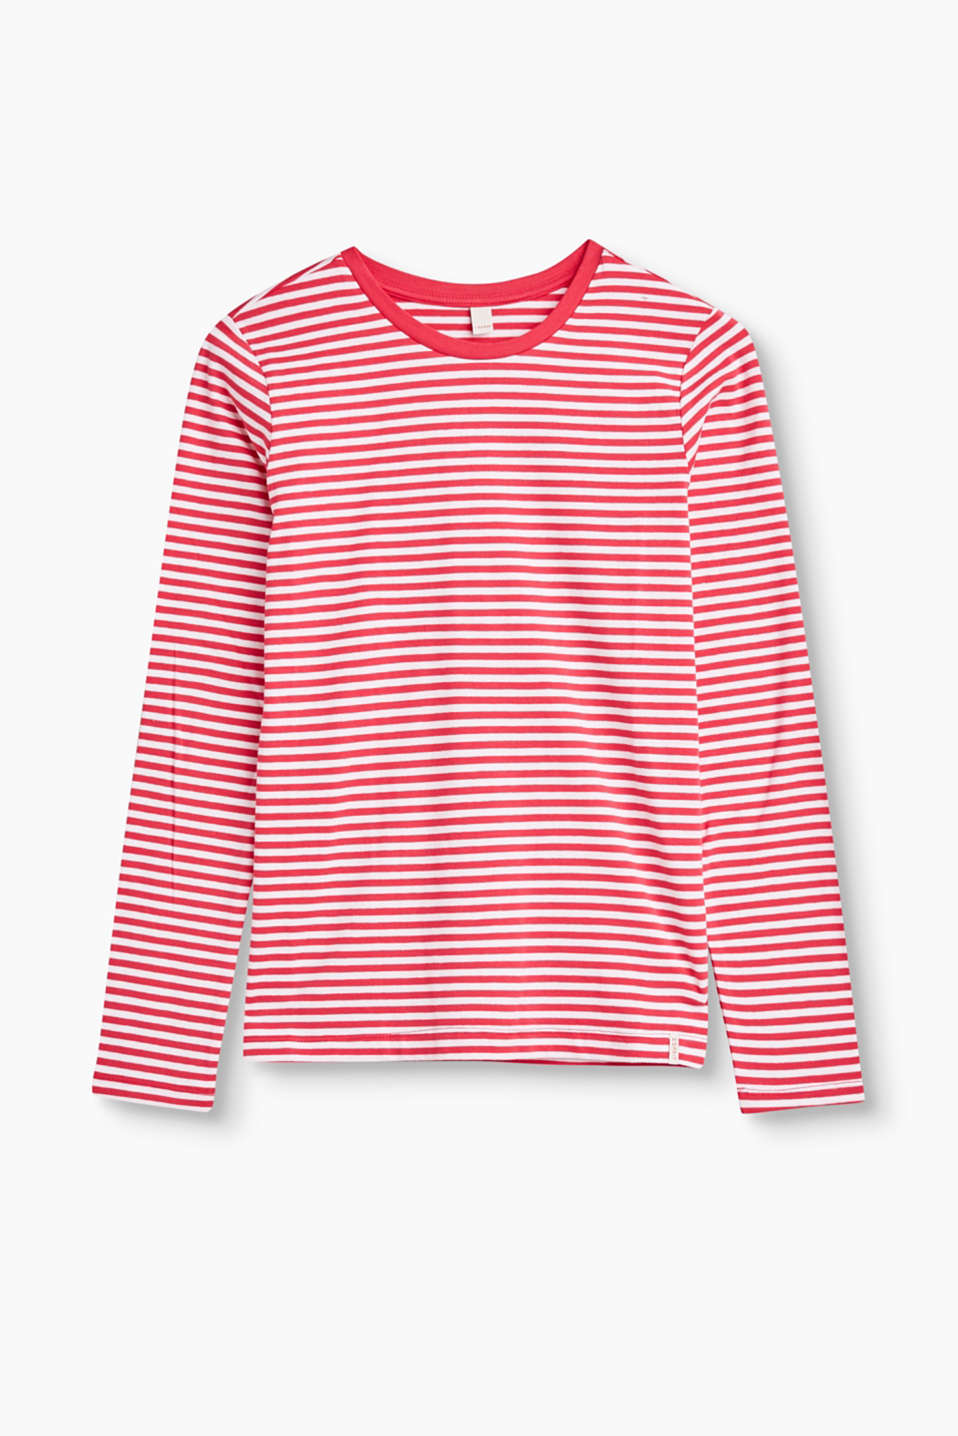 Pink is for girls! The bright striped look makes this basic long sleeve top a head-turner.